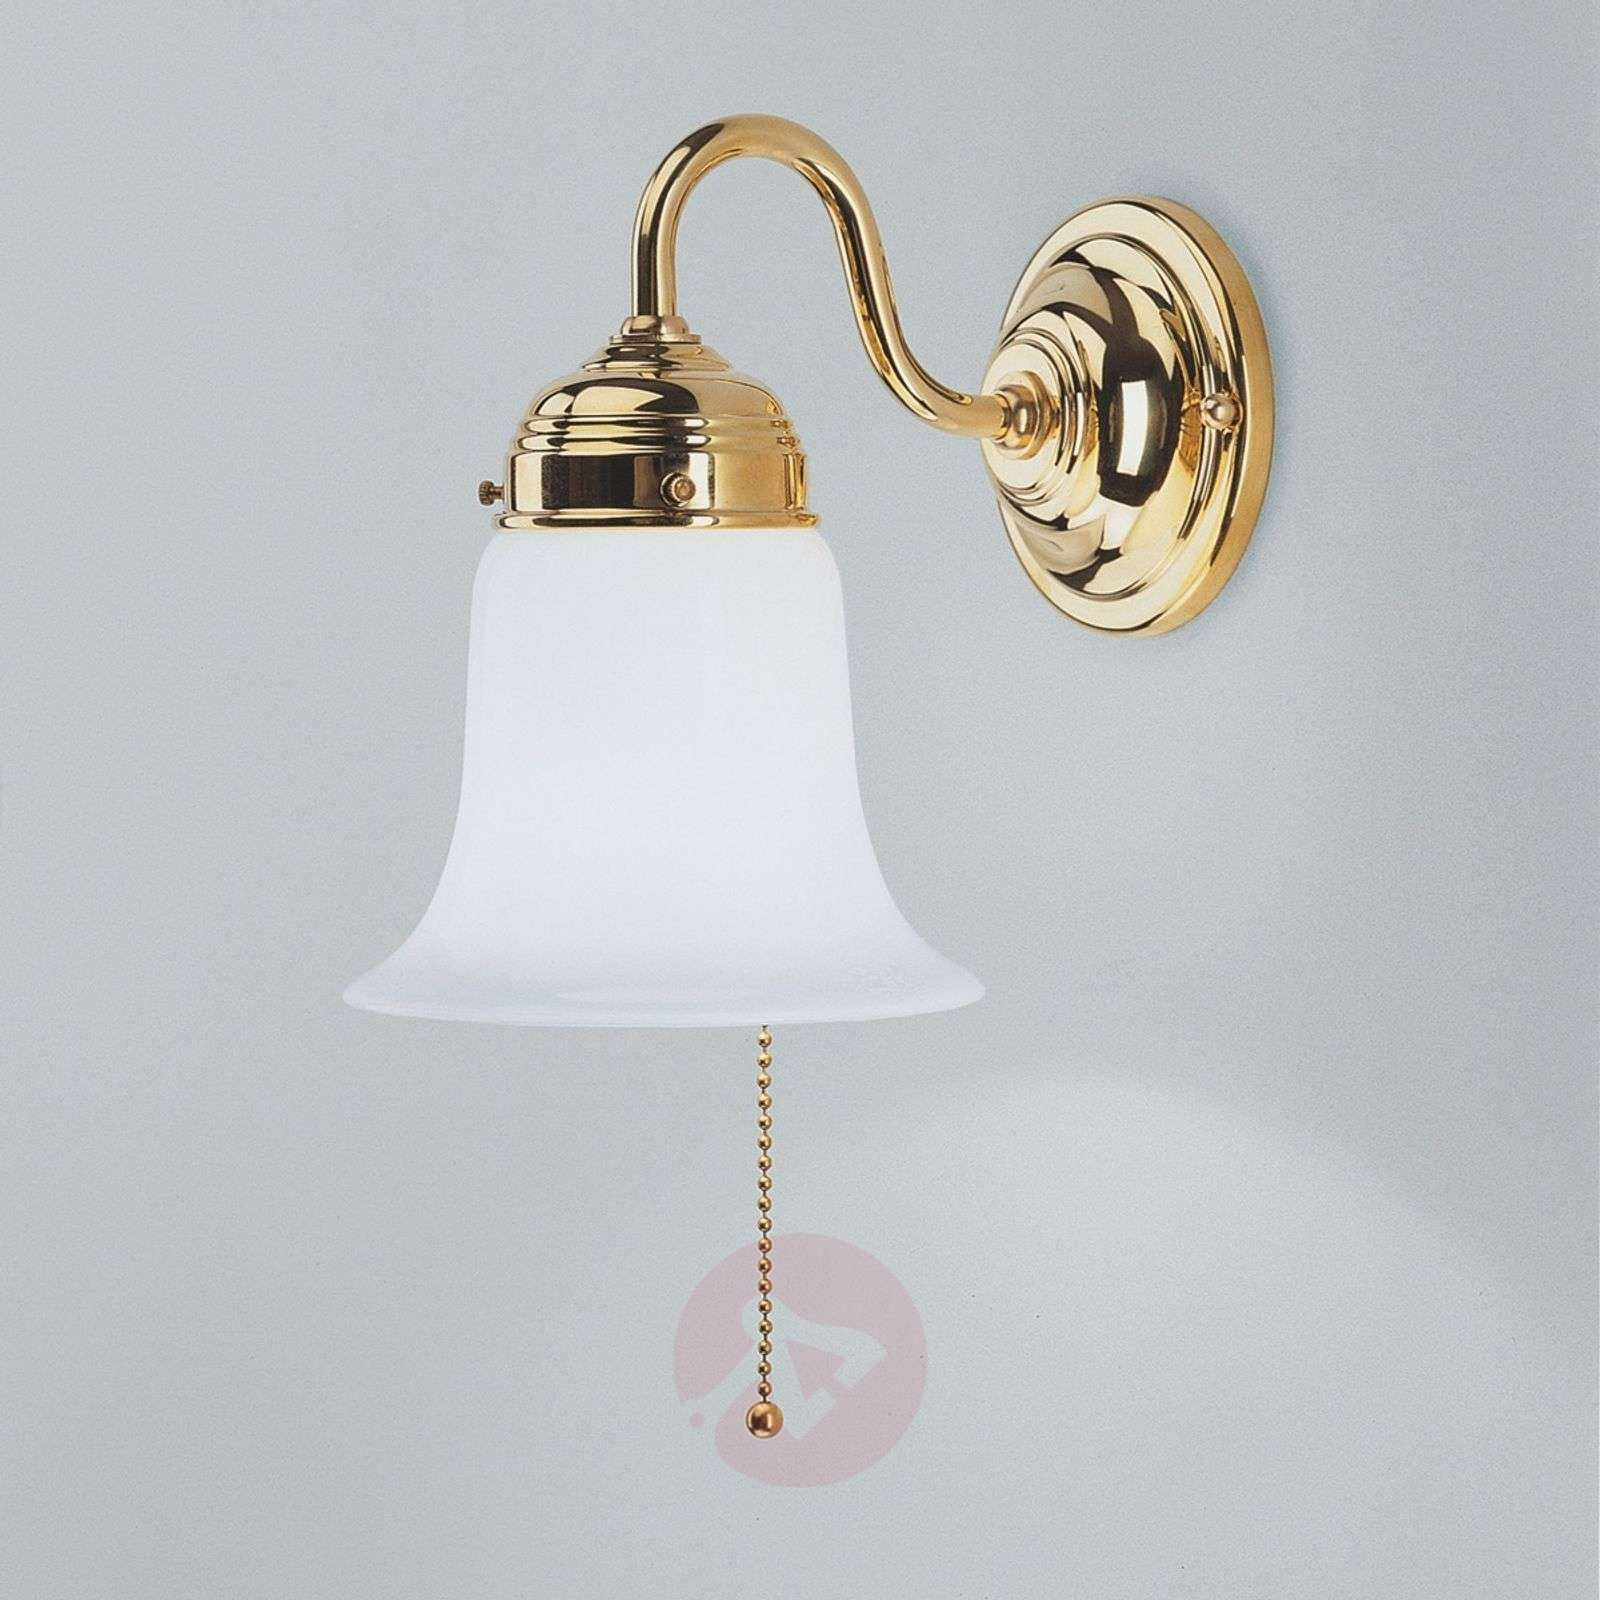 Sibille polished brass wall light lights sibille polished brass wall light 1542095 02 aloadofball Choice Image